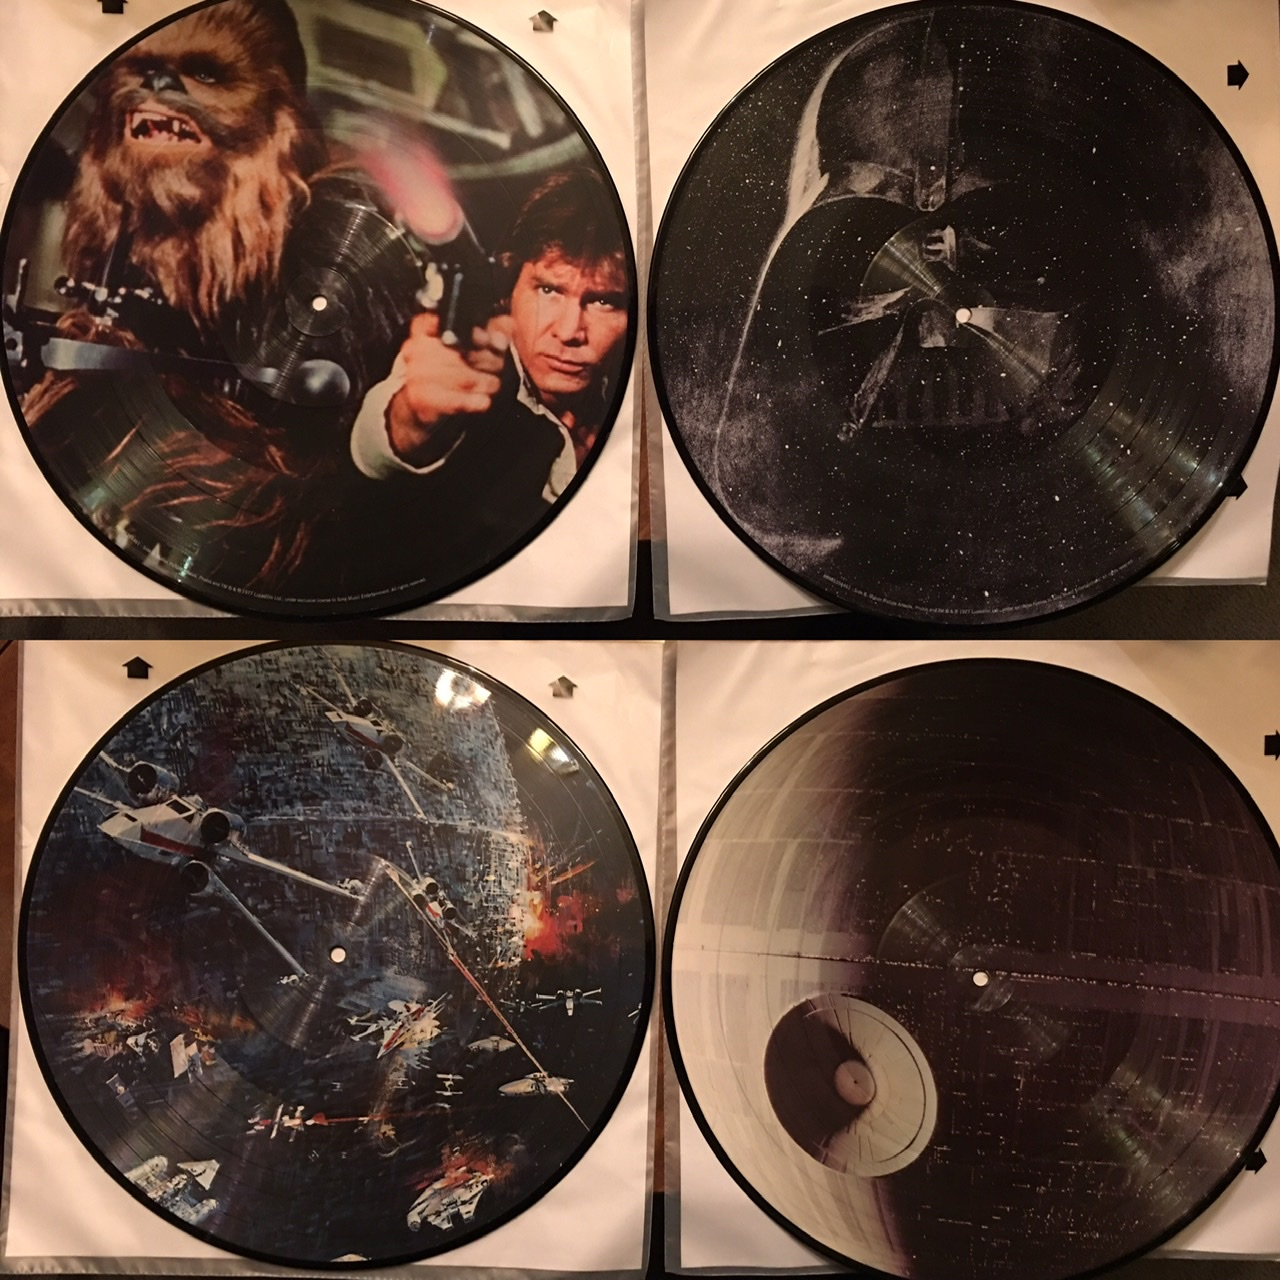 Star Wars picture vinyl